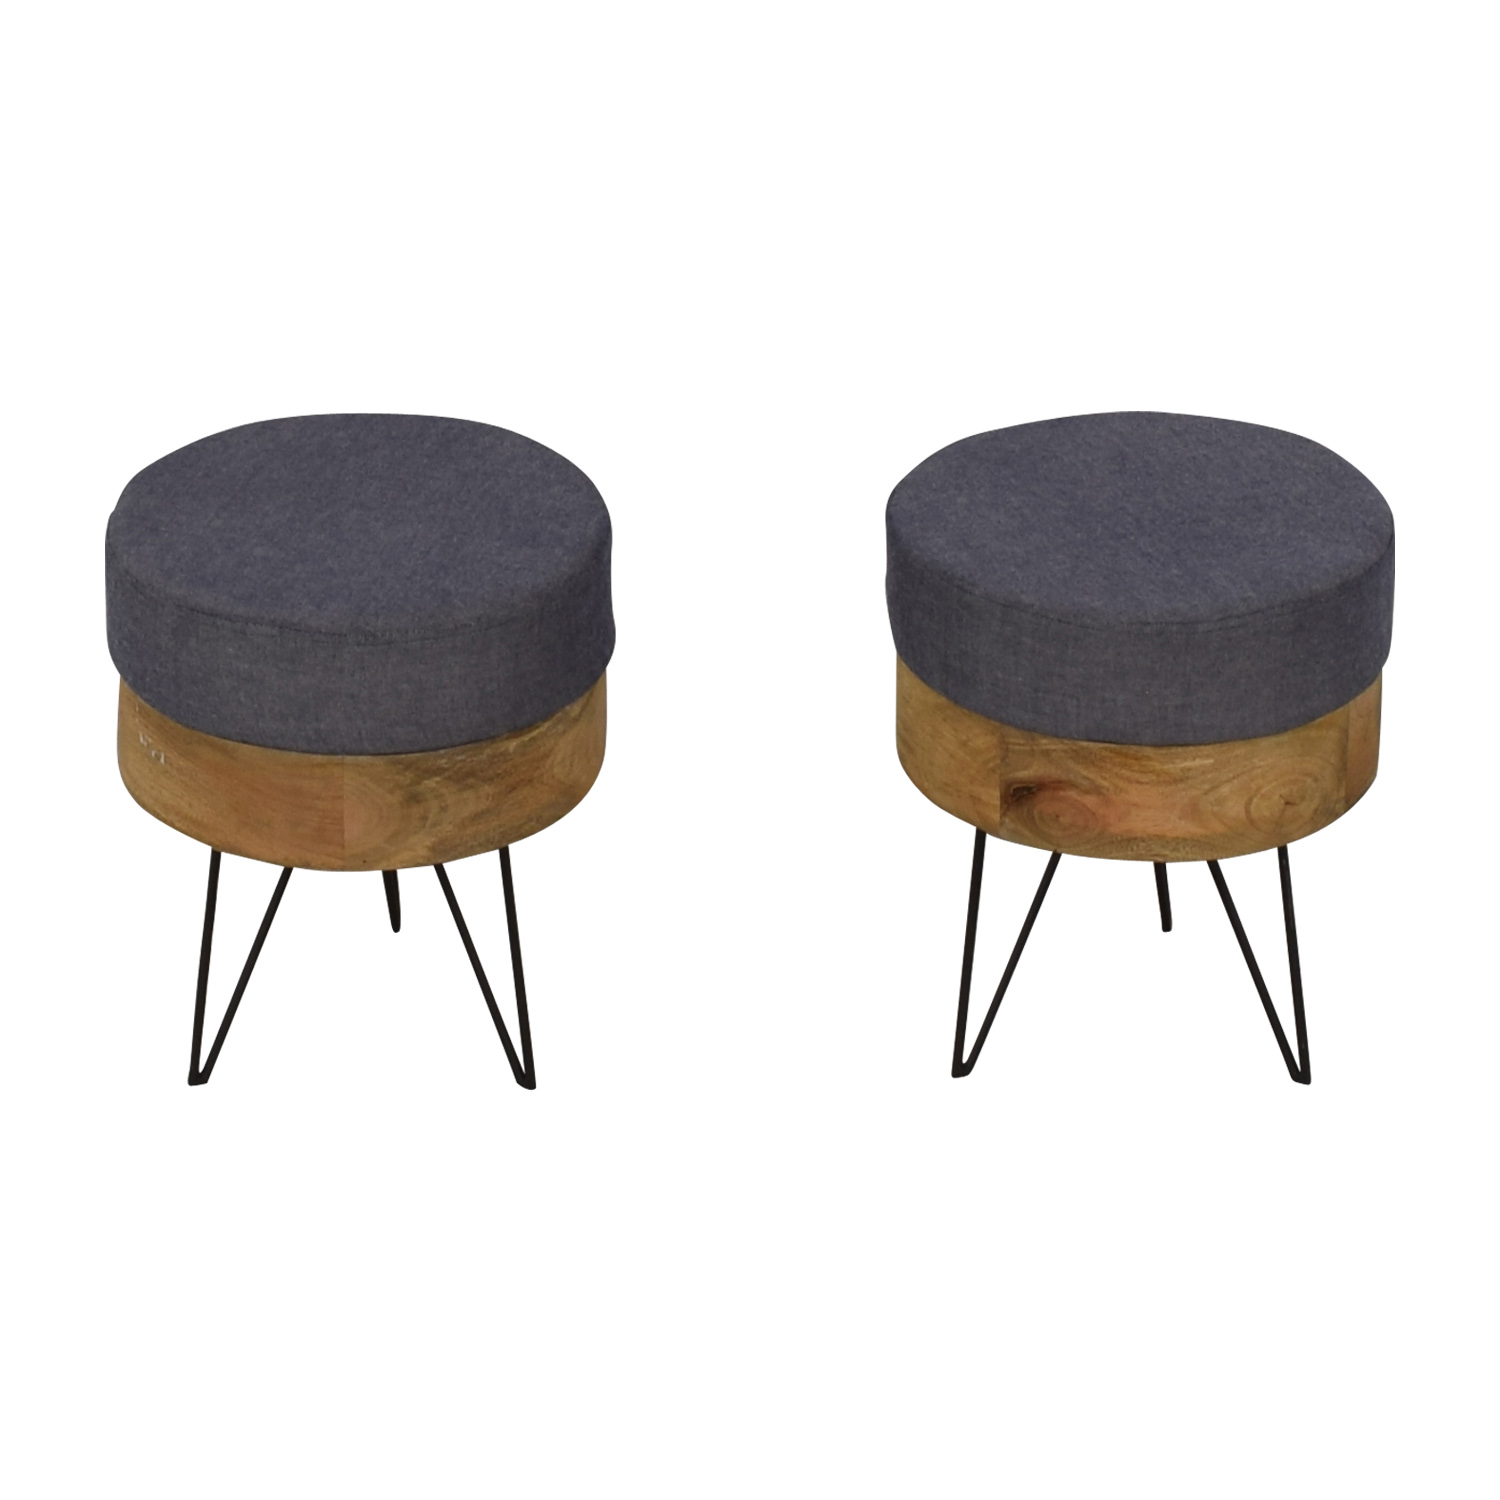 Moe's Home Collection Chambray and Wood Round Stools / Chairs